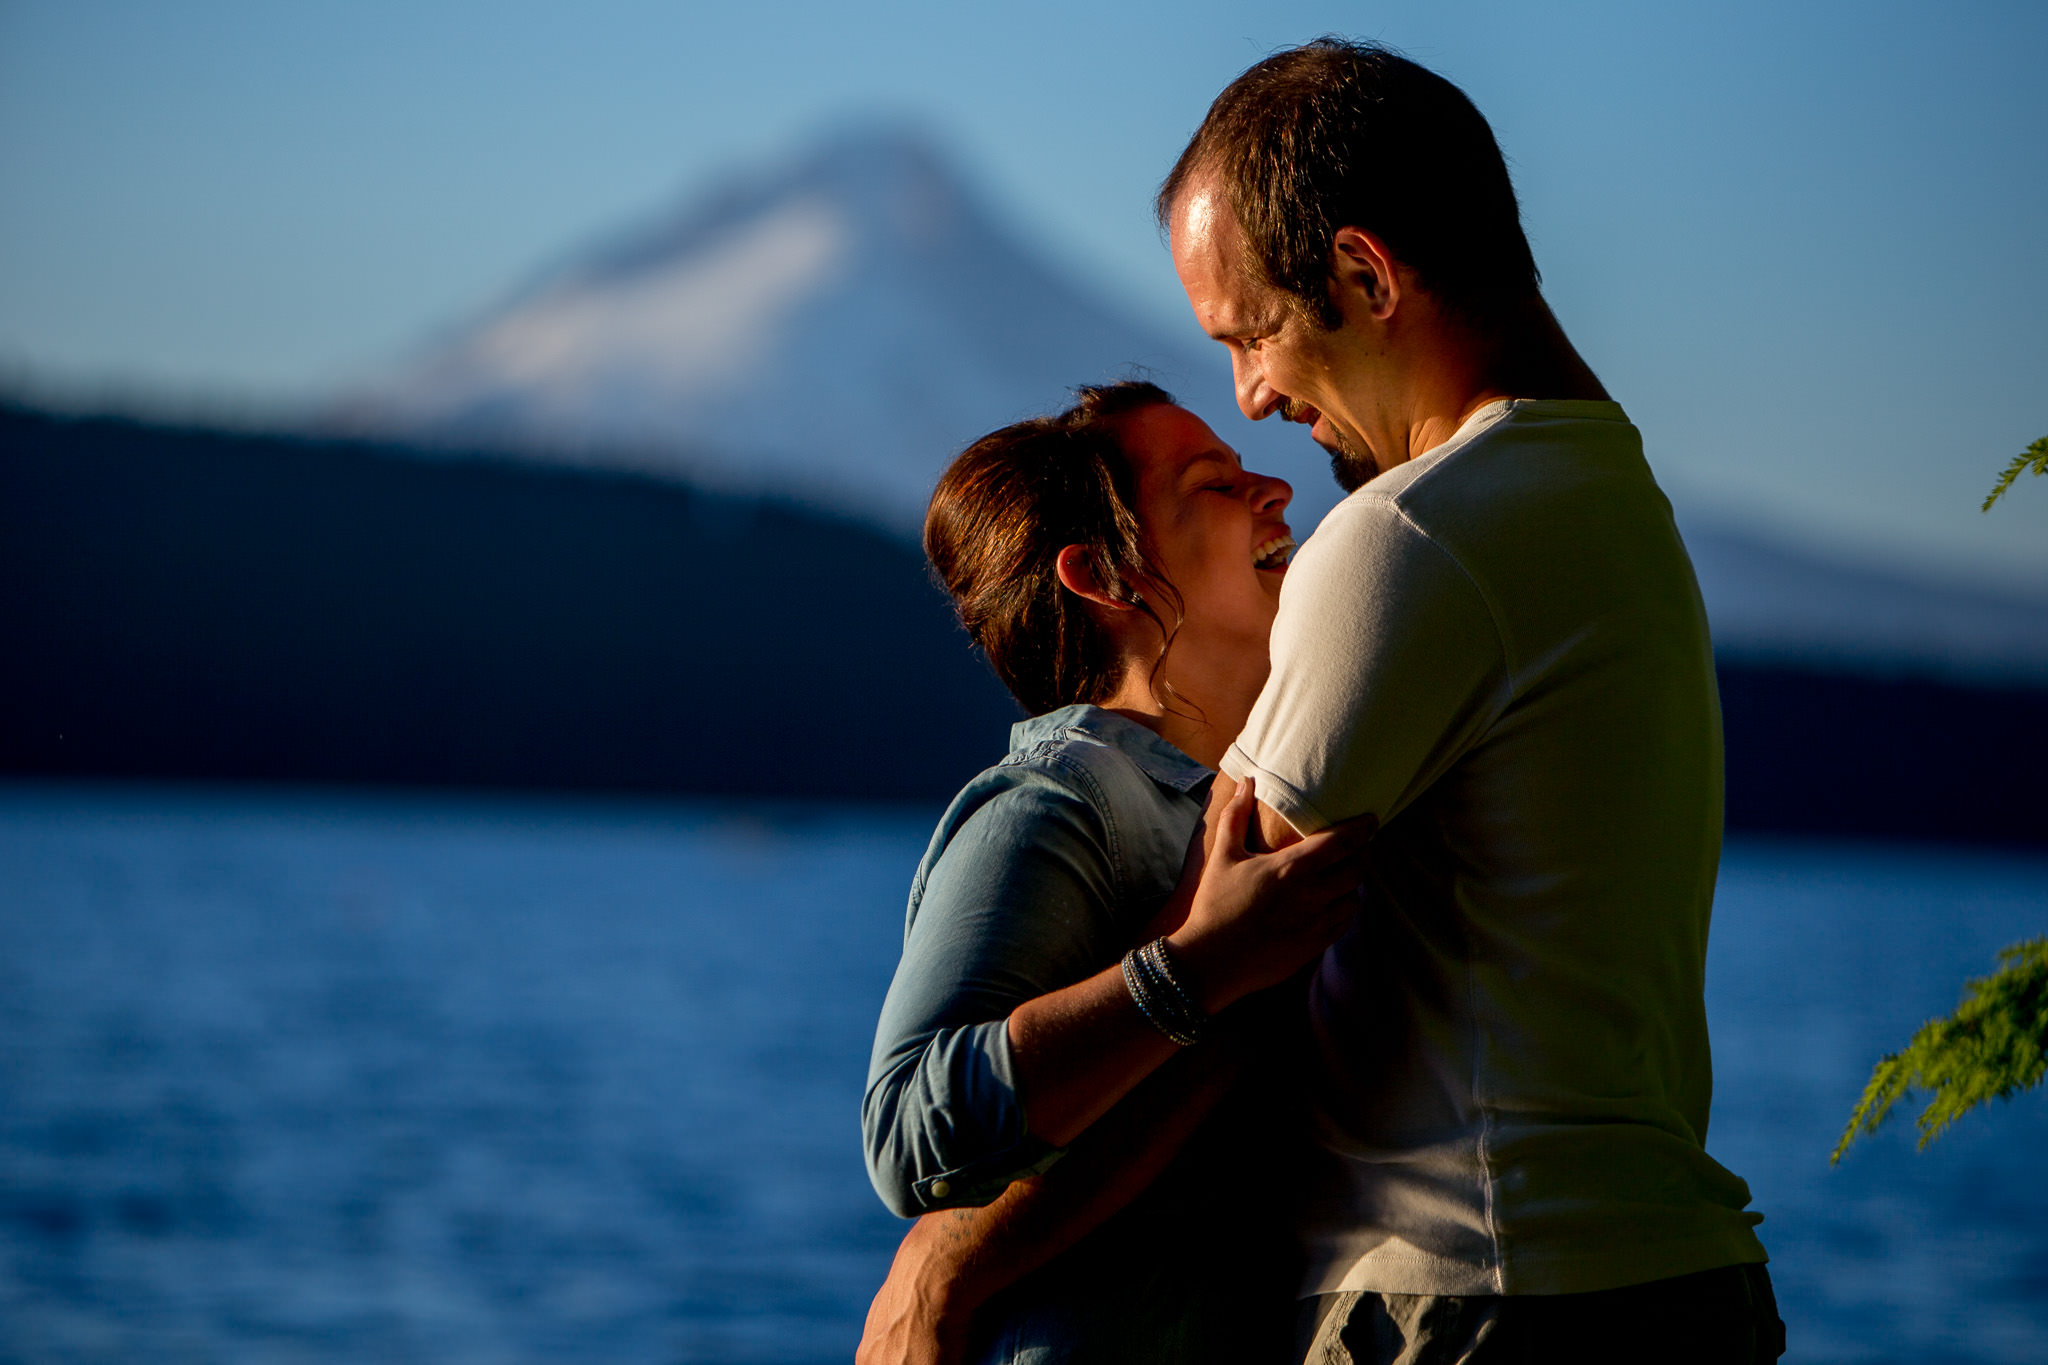 Engagement Photos walking at Timothy Lake at sunset while laughing